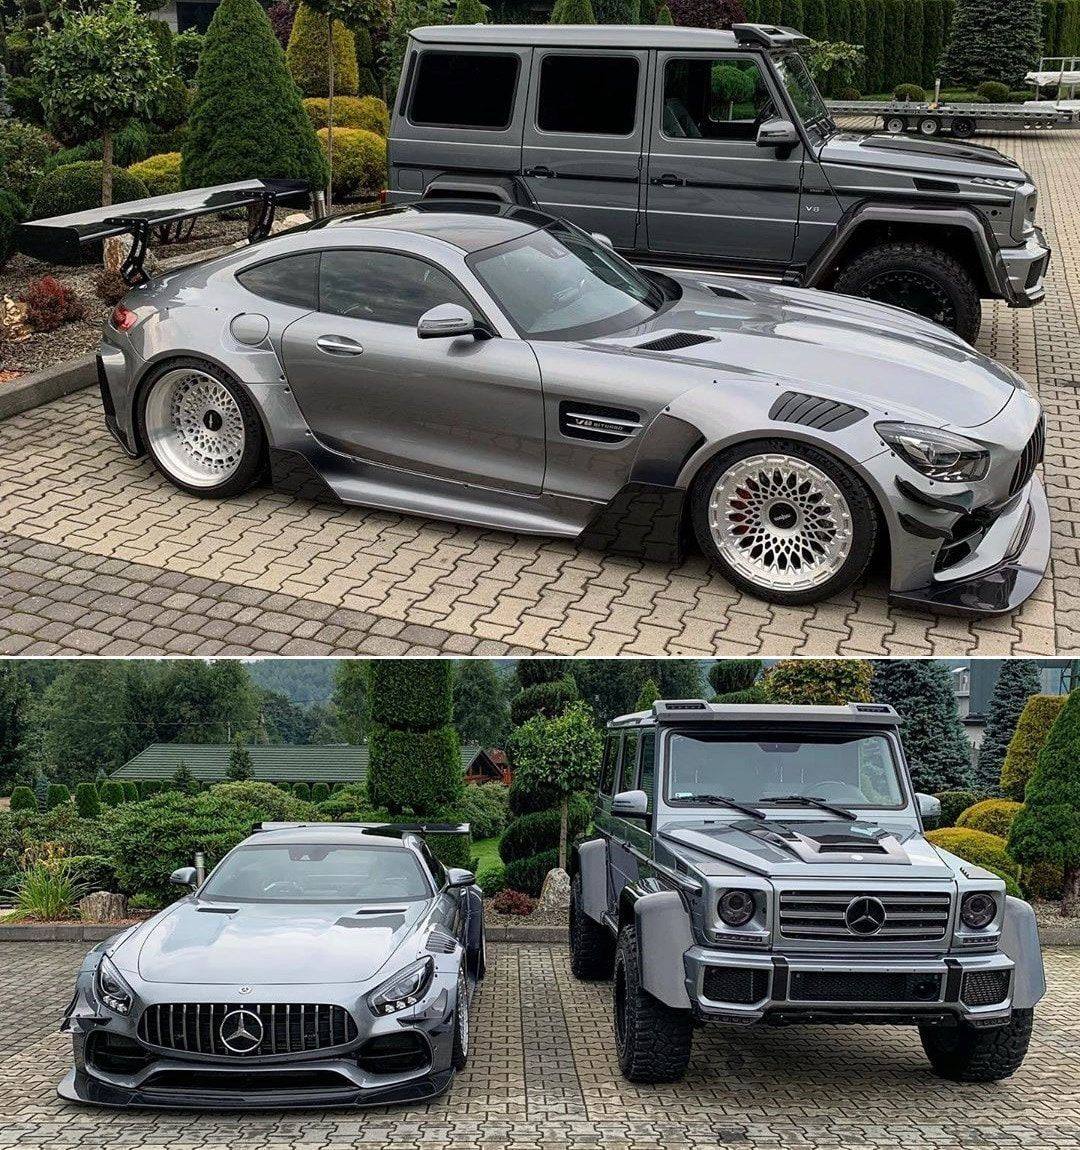 Gts Or G550 Chase Your Dream Car Leave The Worry To Us Dream Cars New Car Photo New Sports Cars